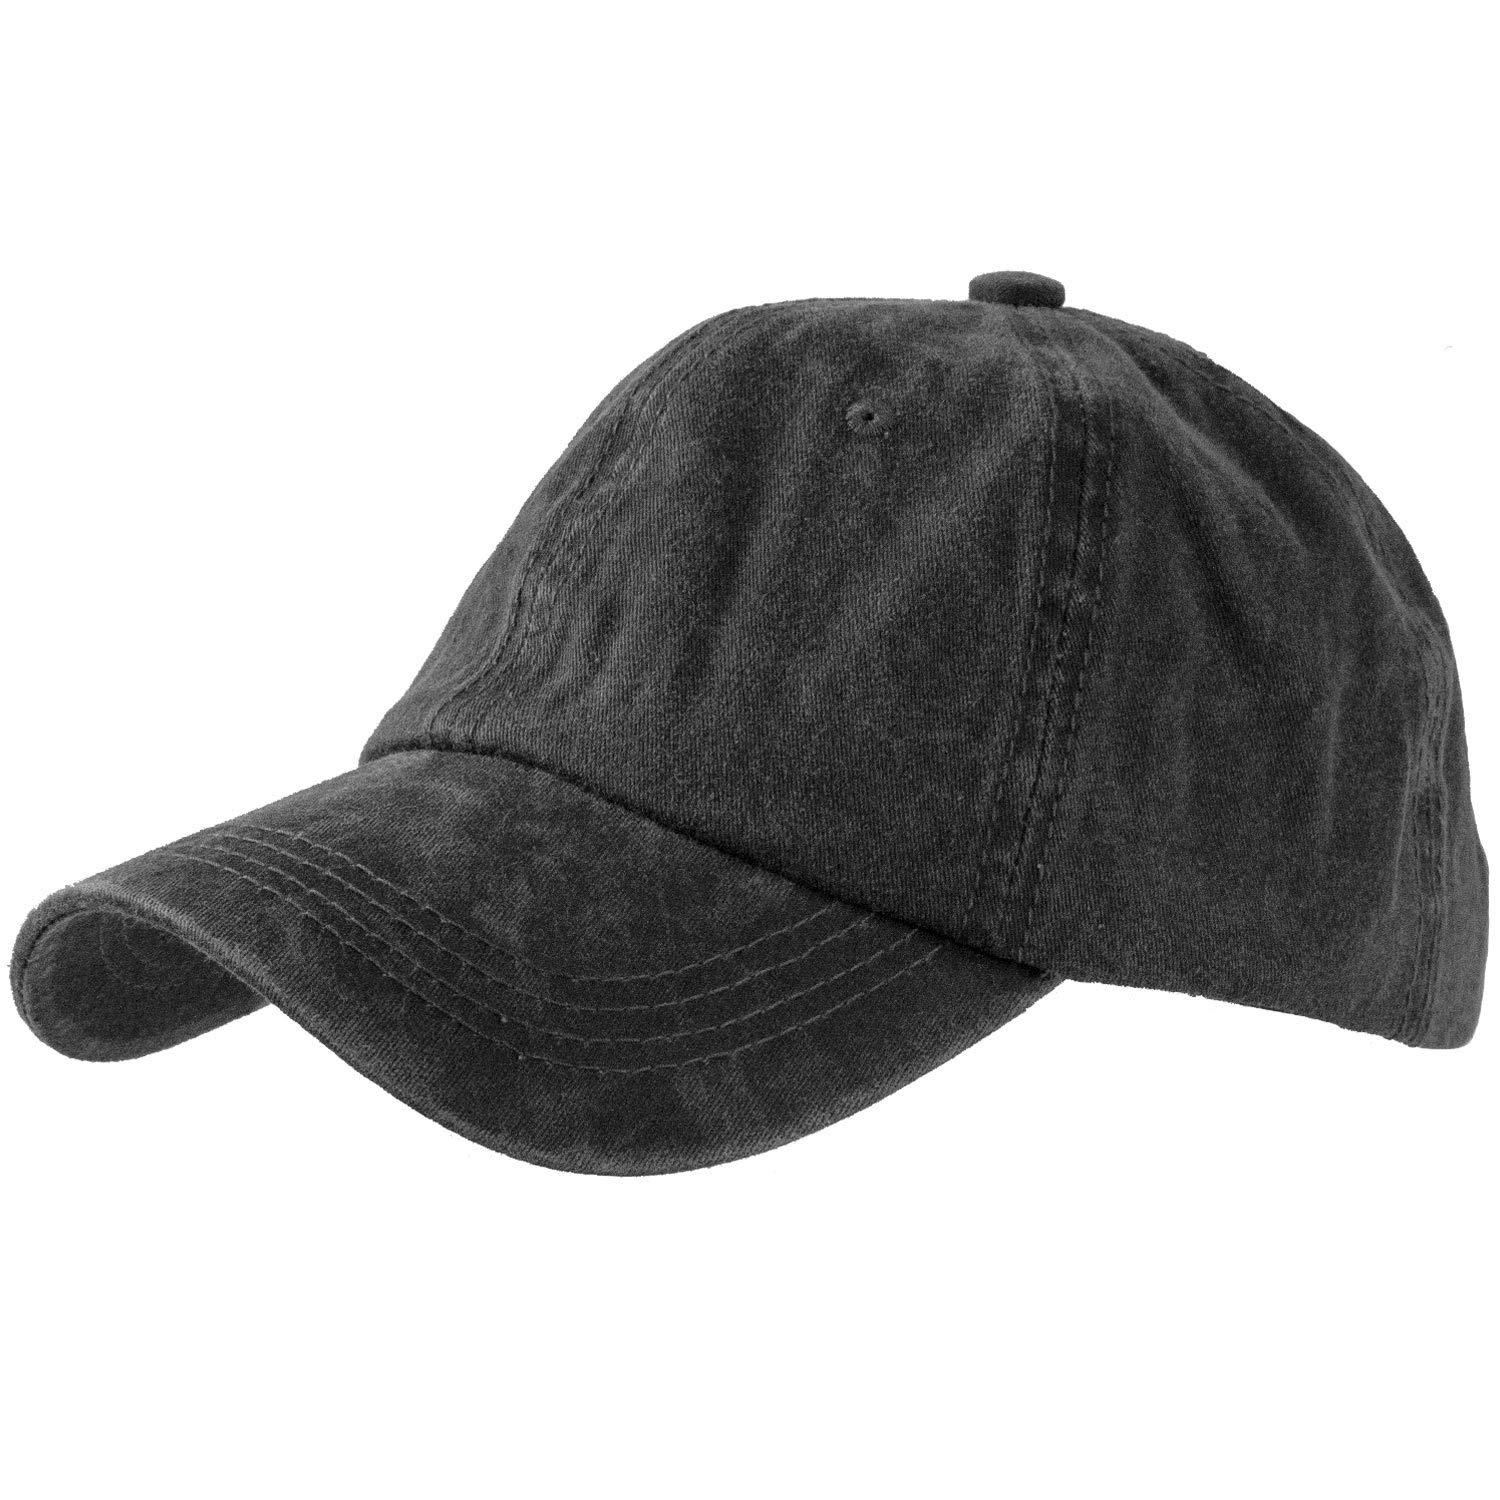 10fe7127c18 Amazon.com  Washed Cotton Baseball Cap (One Size